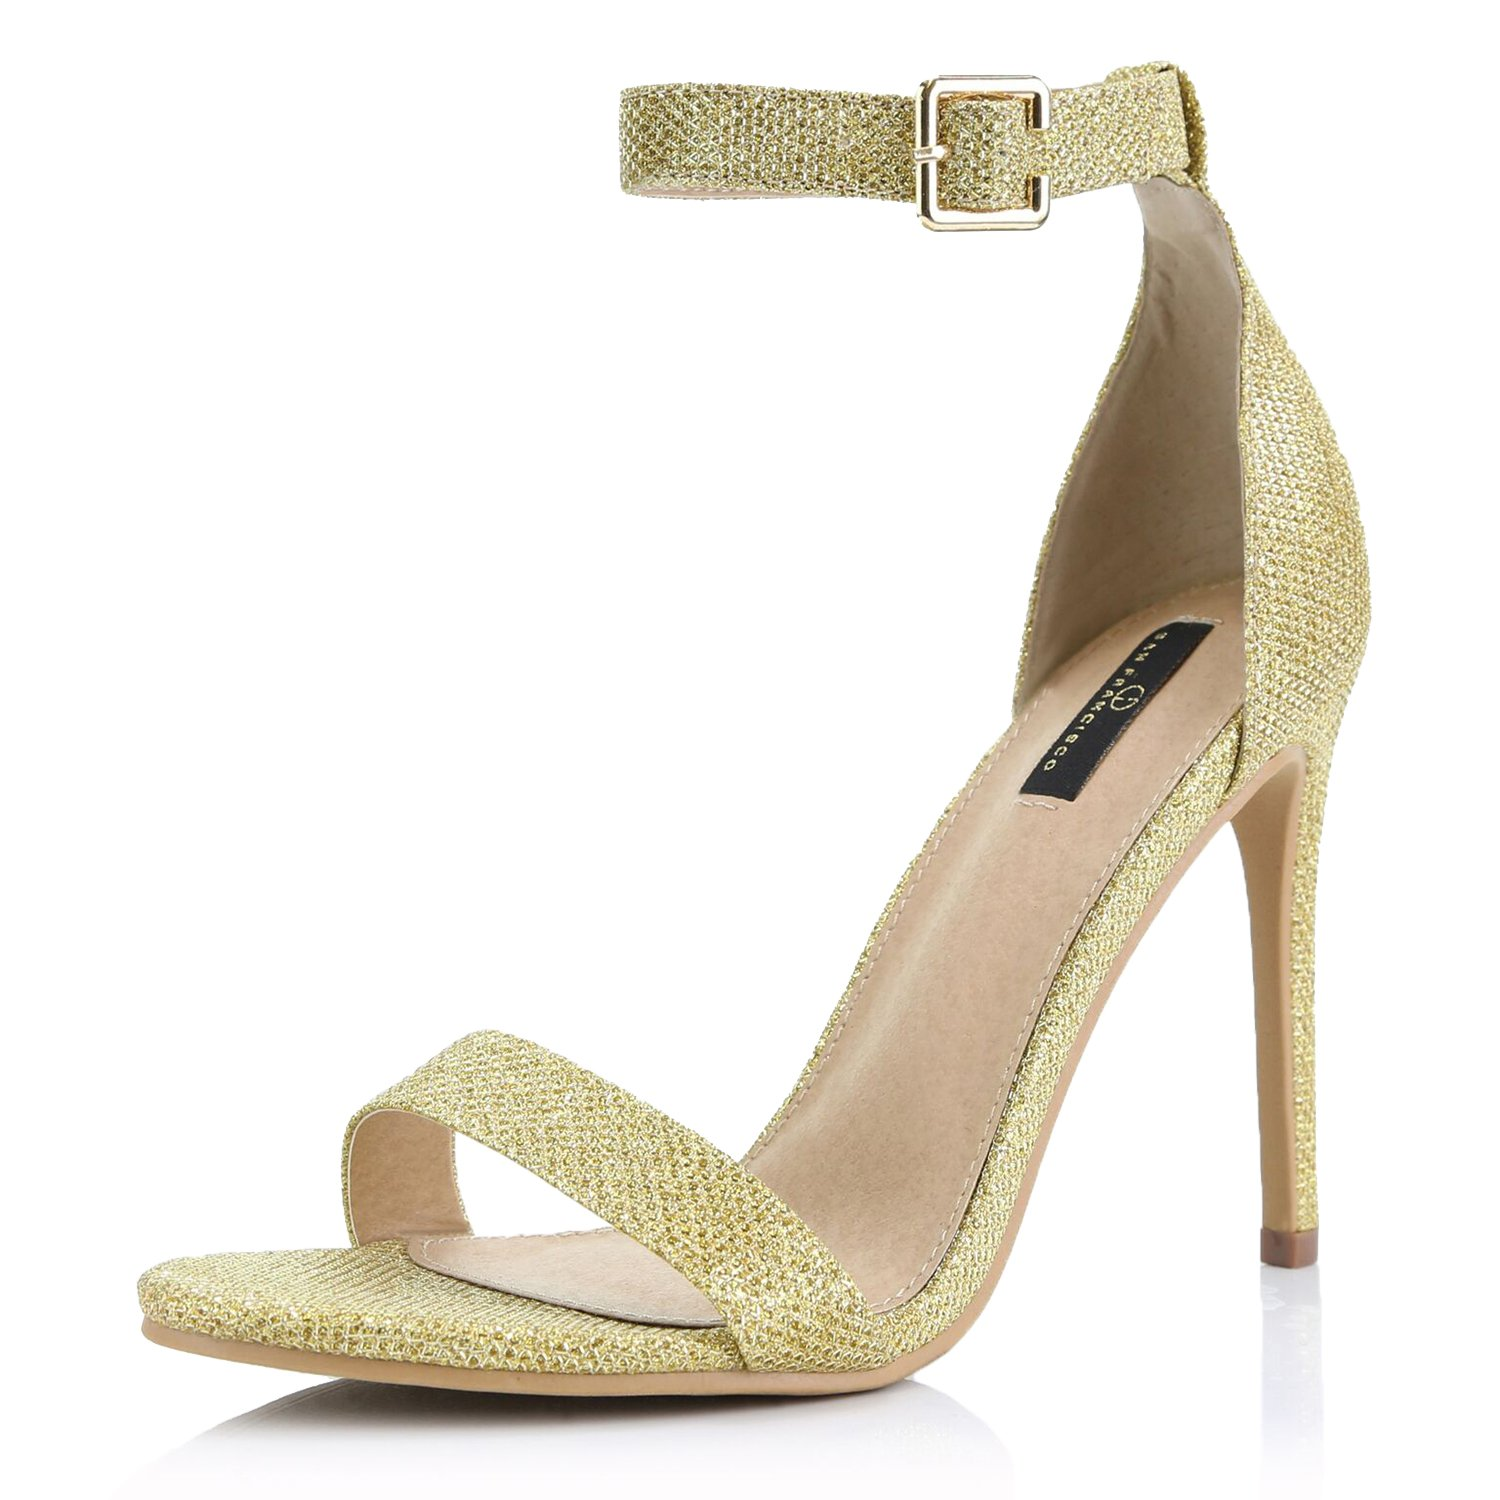 0ee3964a77 Amazon.com | Women's High Heel Open Toe Ankle Buckle Strap Platform Evening  Dress Casual Pump Sandal Shoes | Heeled Sandals